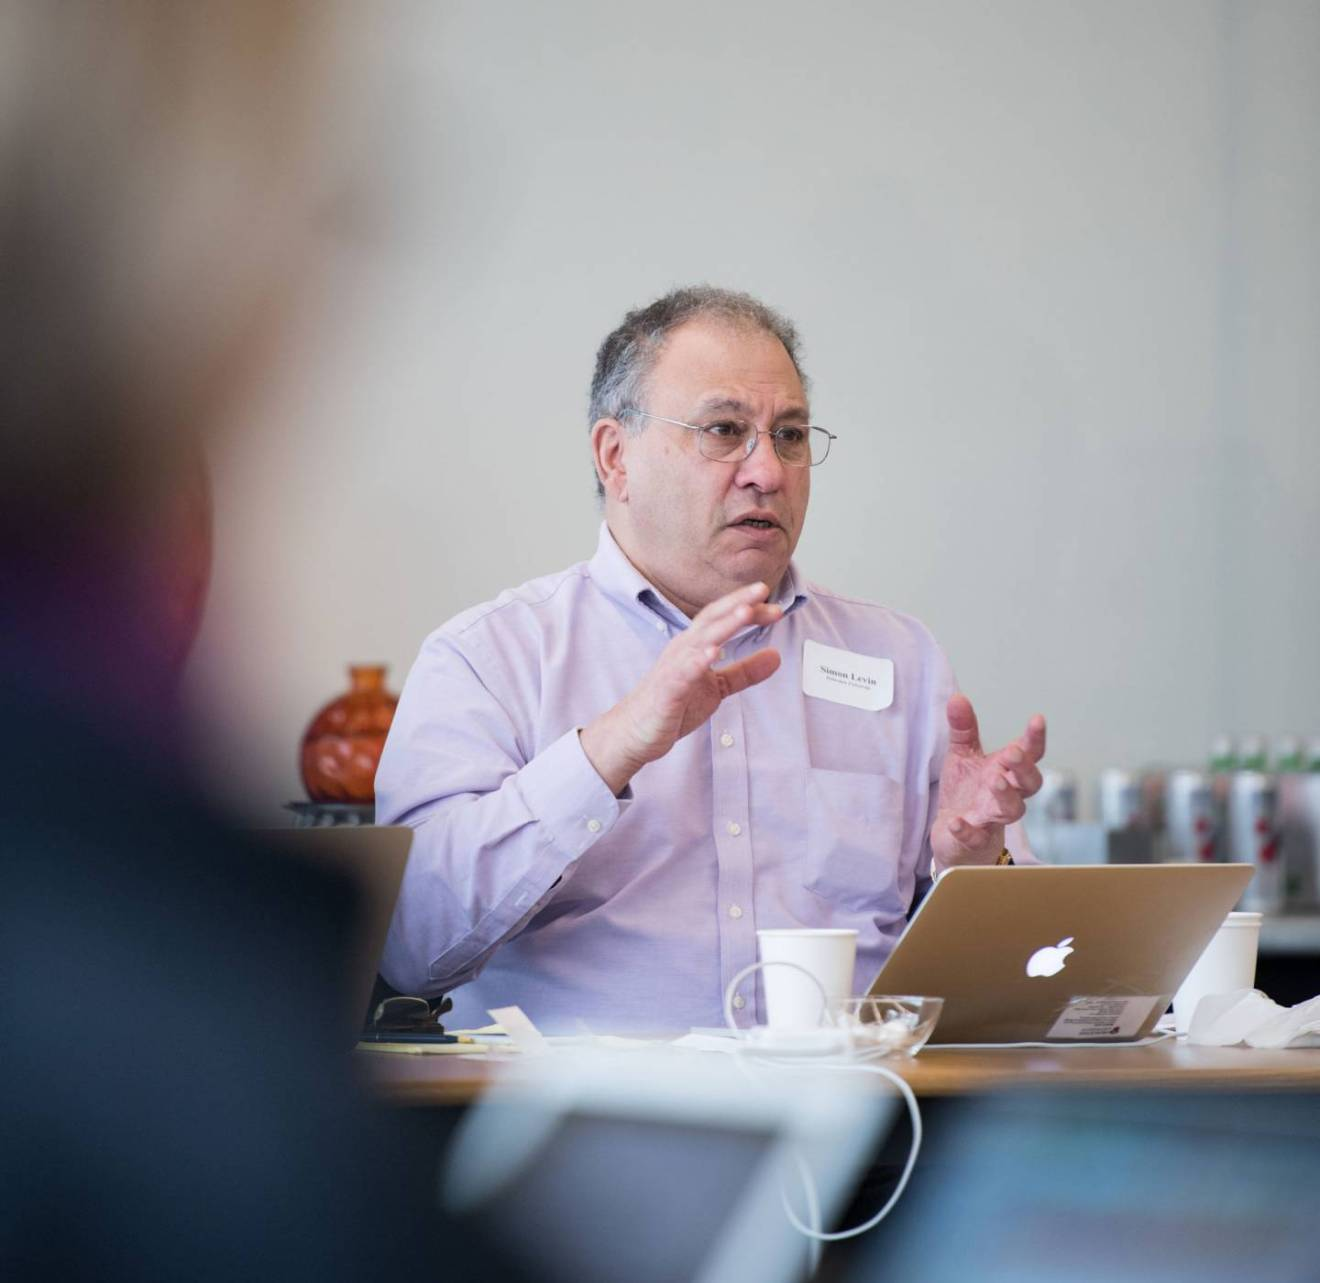 Simon Levin at Earth in 2050 workshop